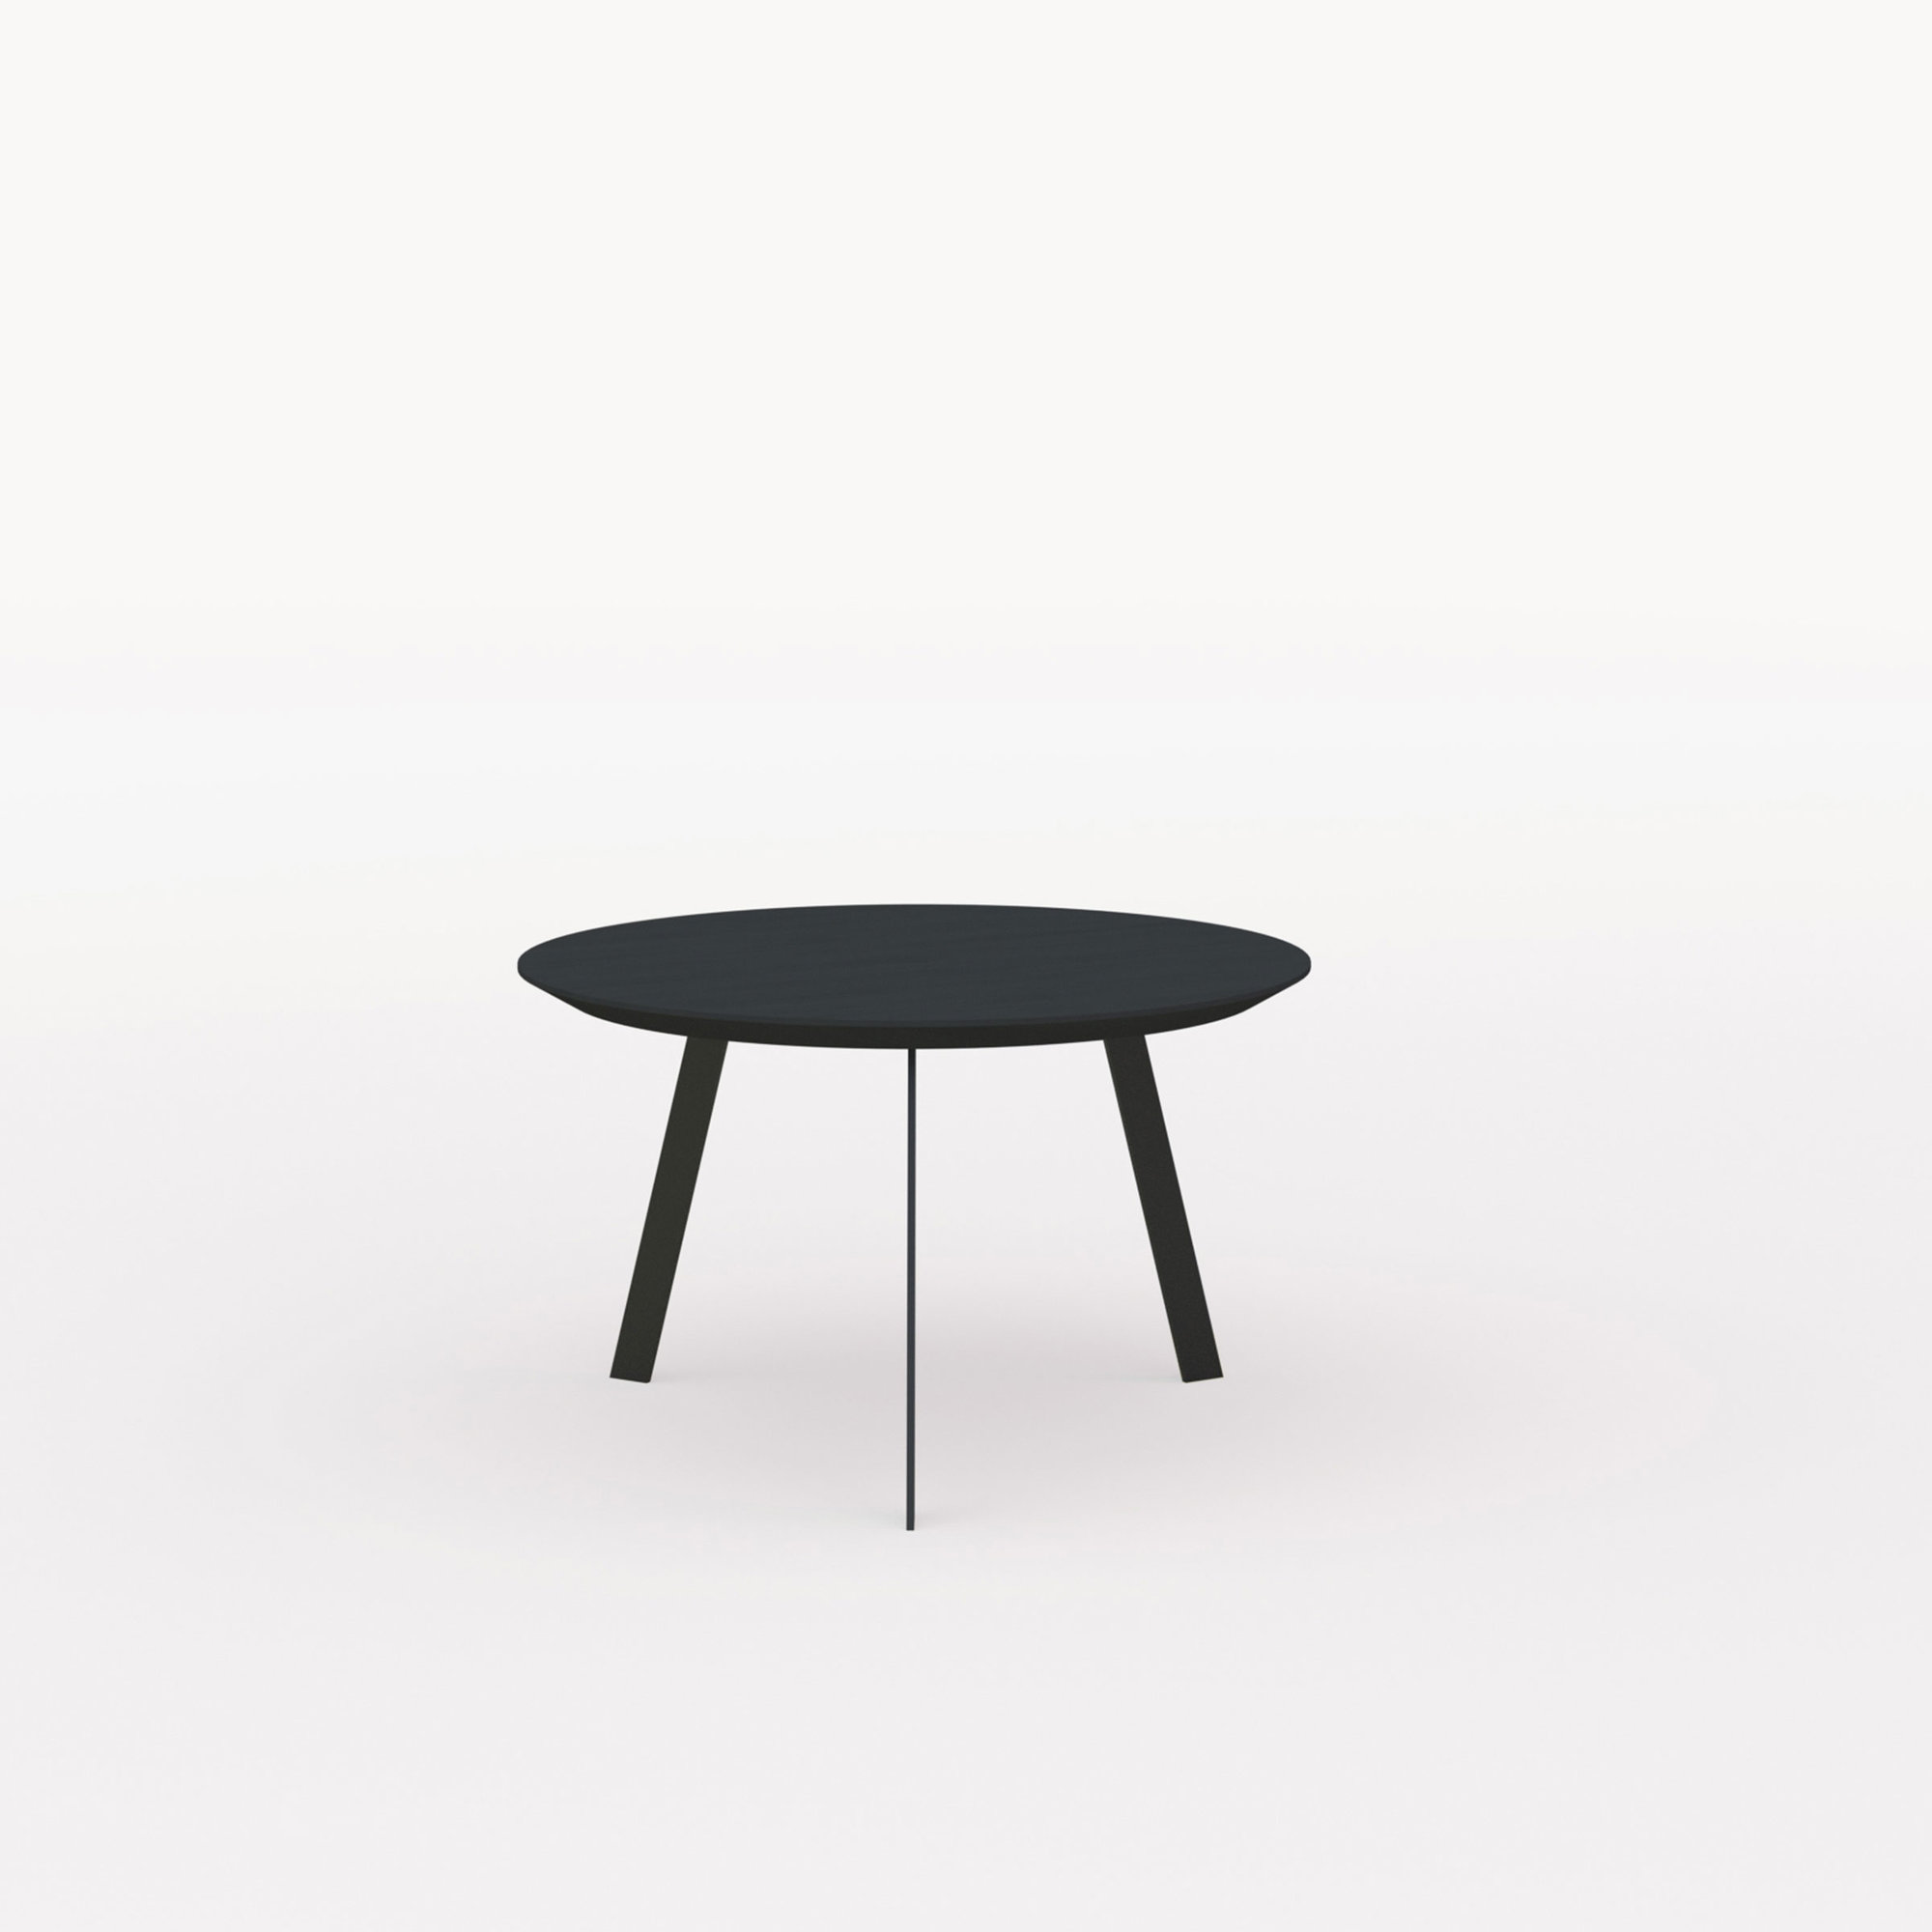 Design salontafel | New Co Coffee Table 90 Round Black | Oak black lacquer | Studio HENK | Listing_image